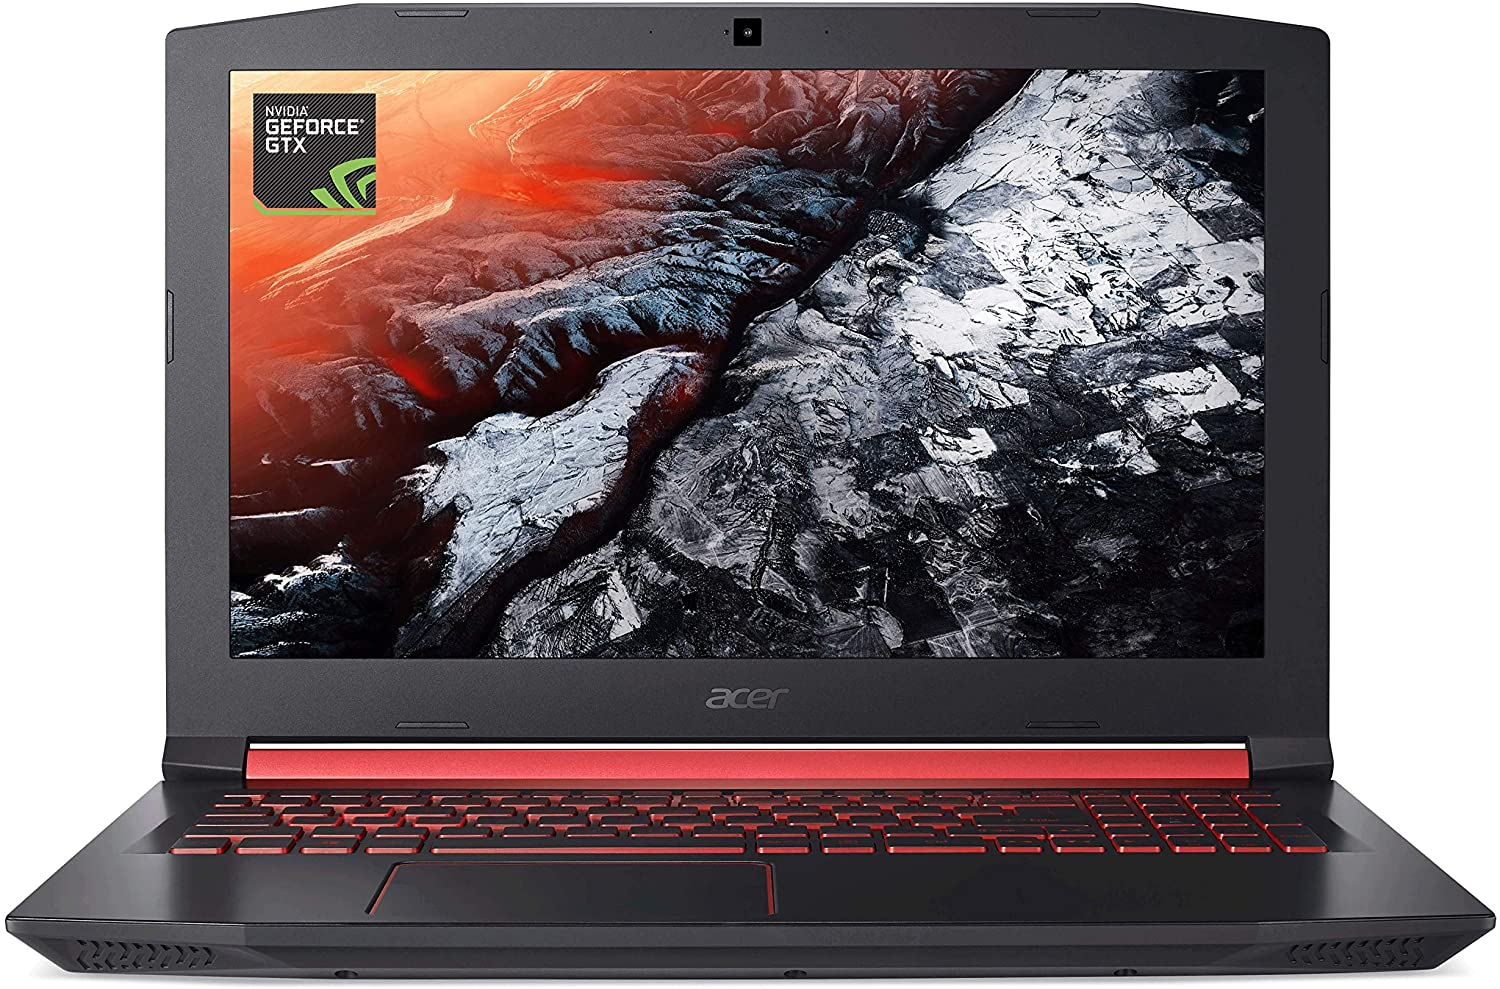 Acer Nitro 5, 7th Gen Intel Core i5-7300HQ, GeForce GTX 1050, 8GB DDR4, 256GB SSD, Windows 10 Home, Shale Black, AN515-51-56U0